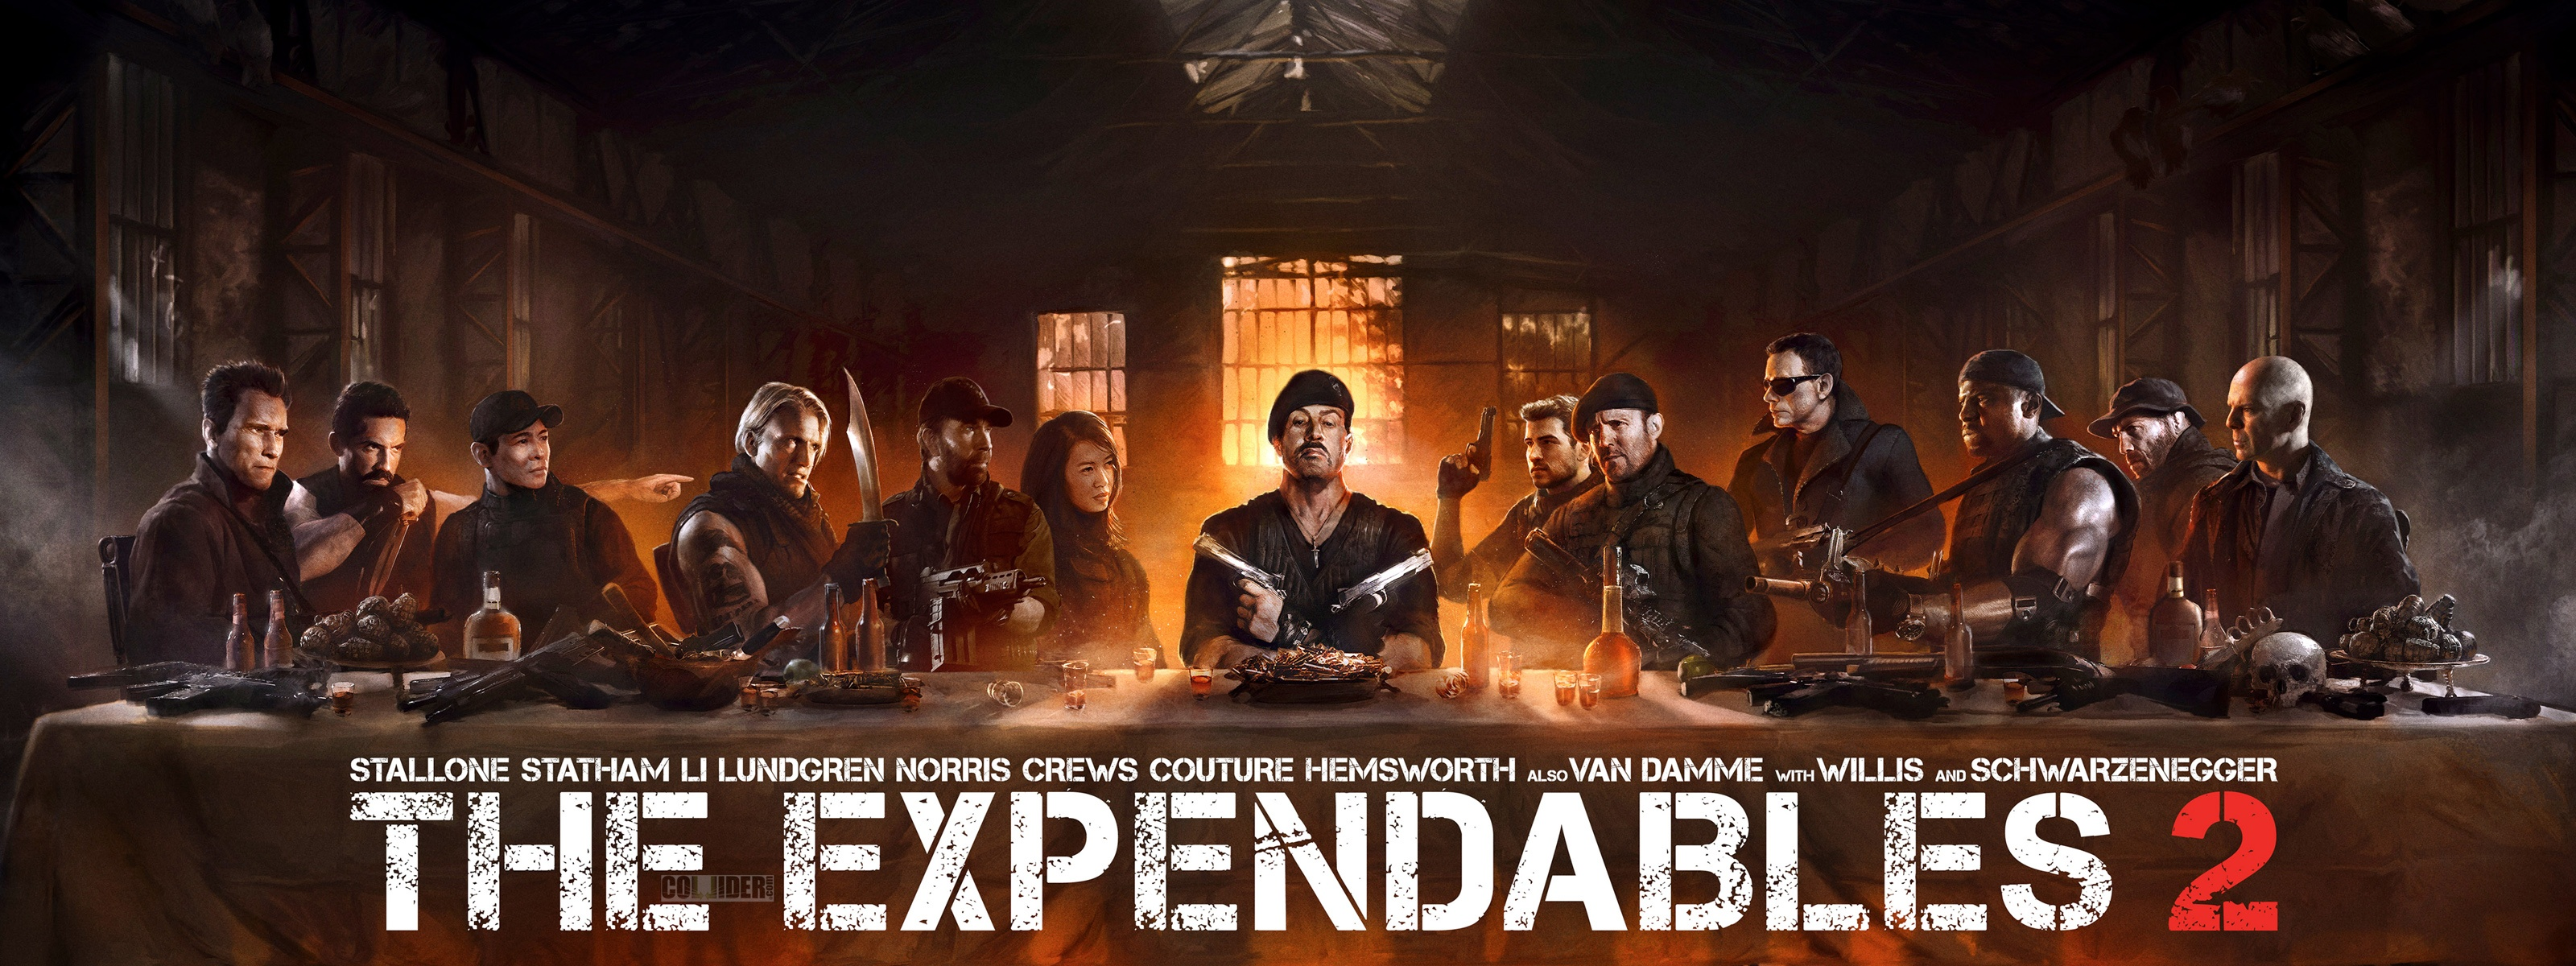 Expendables 2 The Last Supper Wallpapers HD Wallpapers 3200x1200